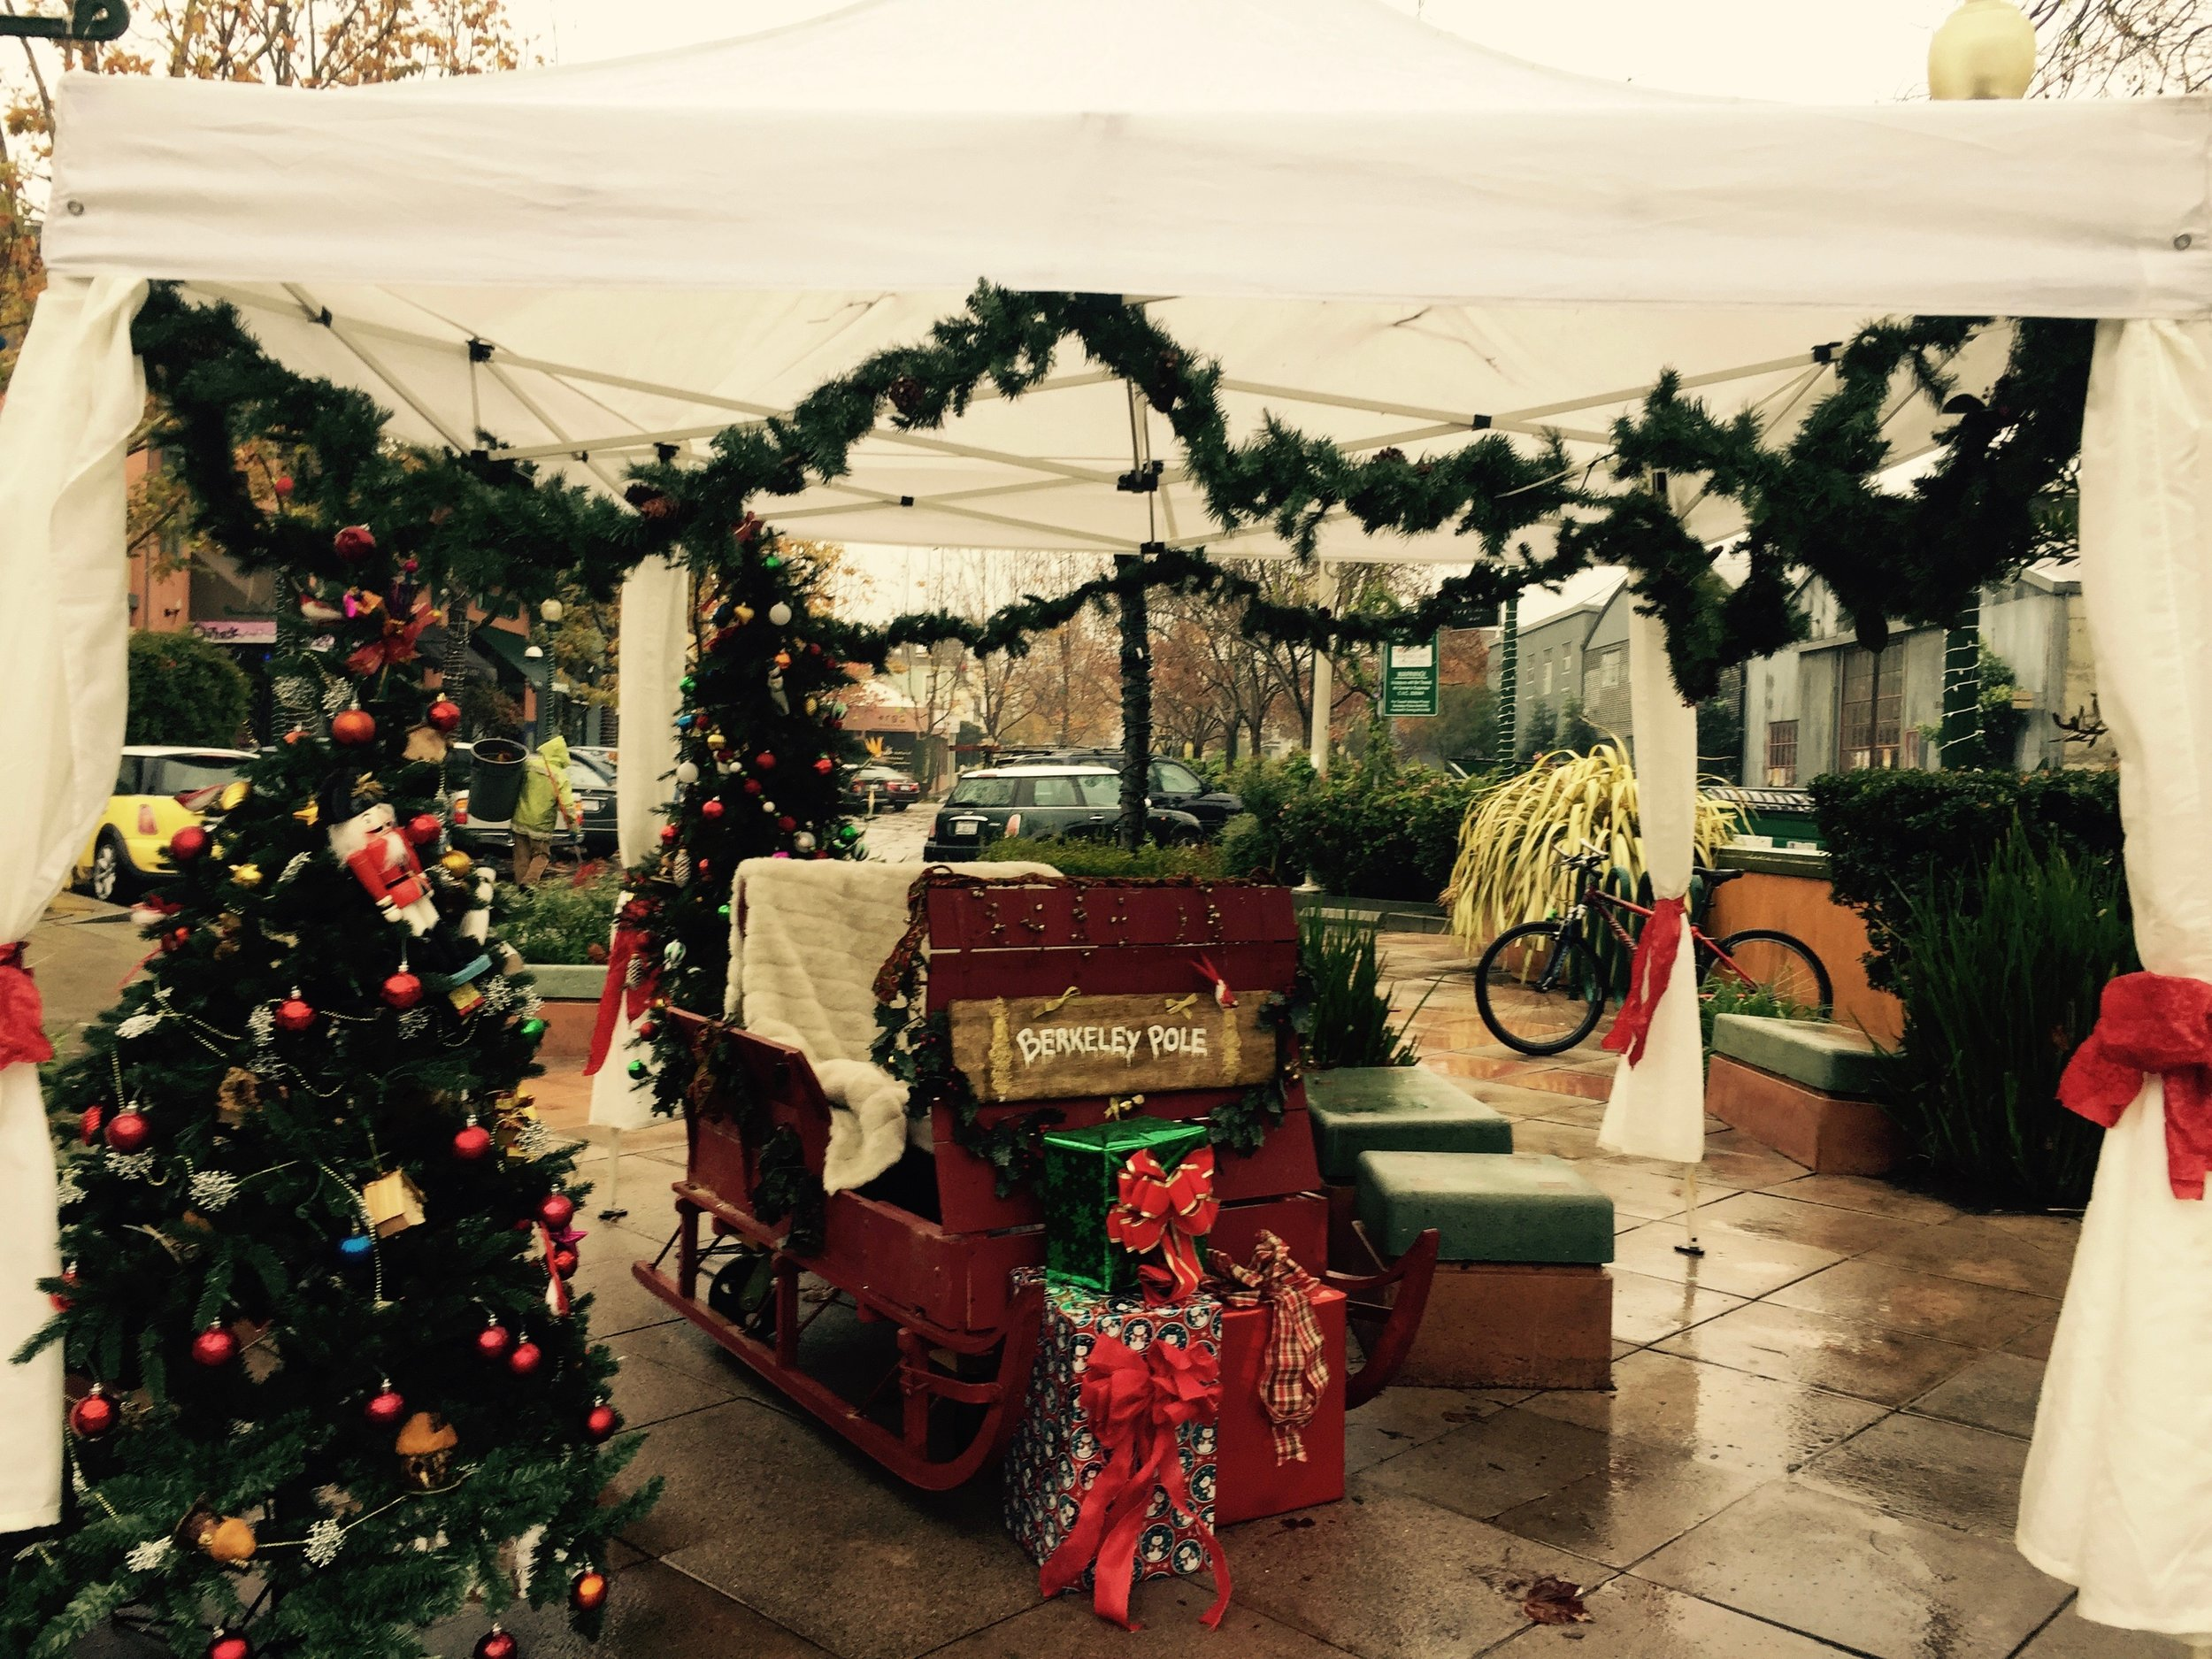 12/10/16 A wet morning set up, but we are ready for you Santa!